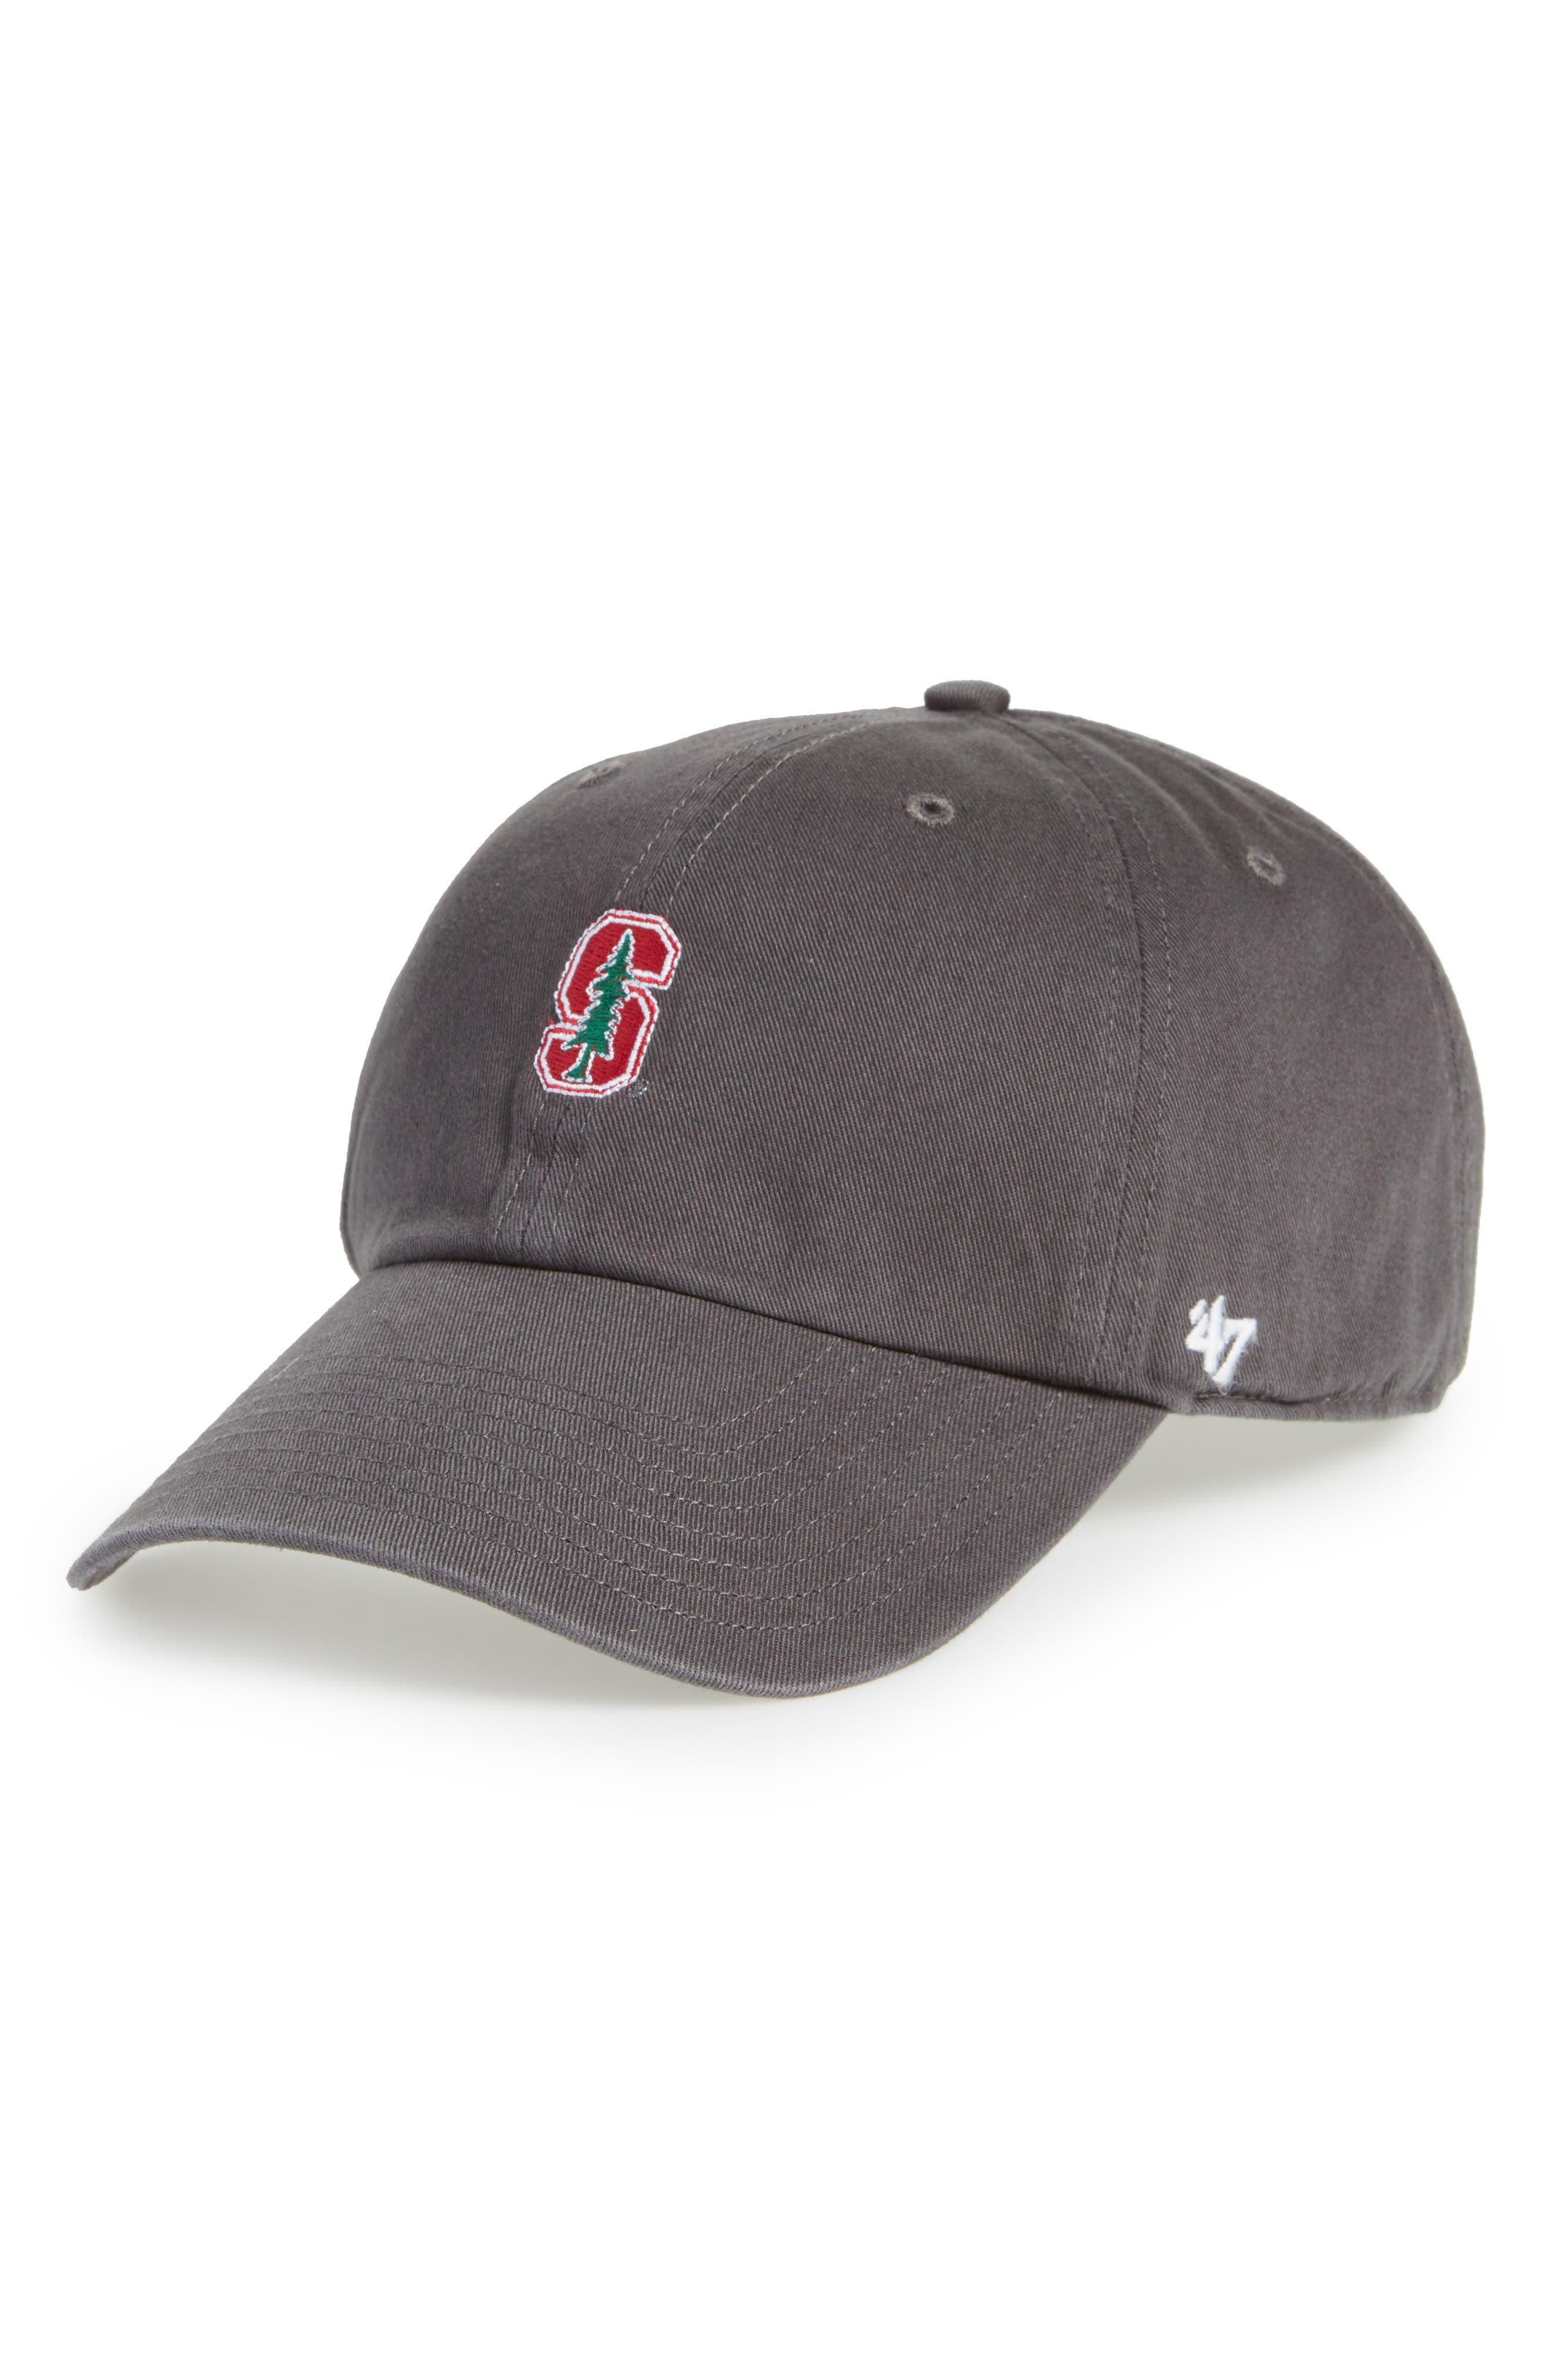 Collegiate Clean-Up Stanford Cardinals Ball Cap,                         Main,                         color, Stanford Cardinal